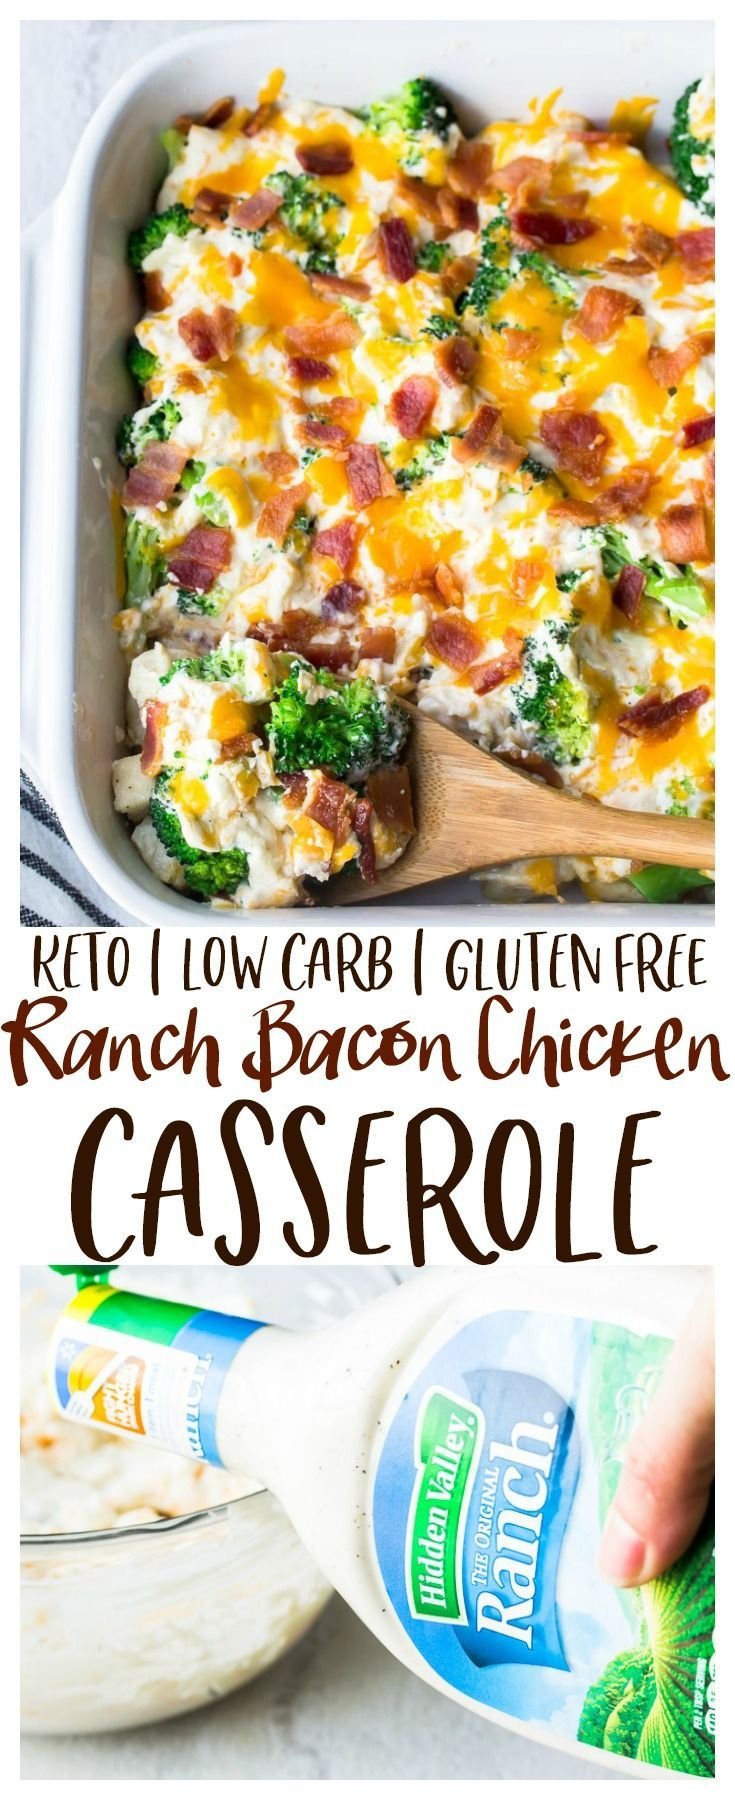 Ranch Bacon Chicken Casserole - an easy, super flavorful casserole recipe that's family friendly. Loaded with creamy Hidden Valley Ranch dressing and cheddar cheese, this casserole is also suitable for those following low carb, keto, or gluten free diets. | @hvranch